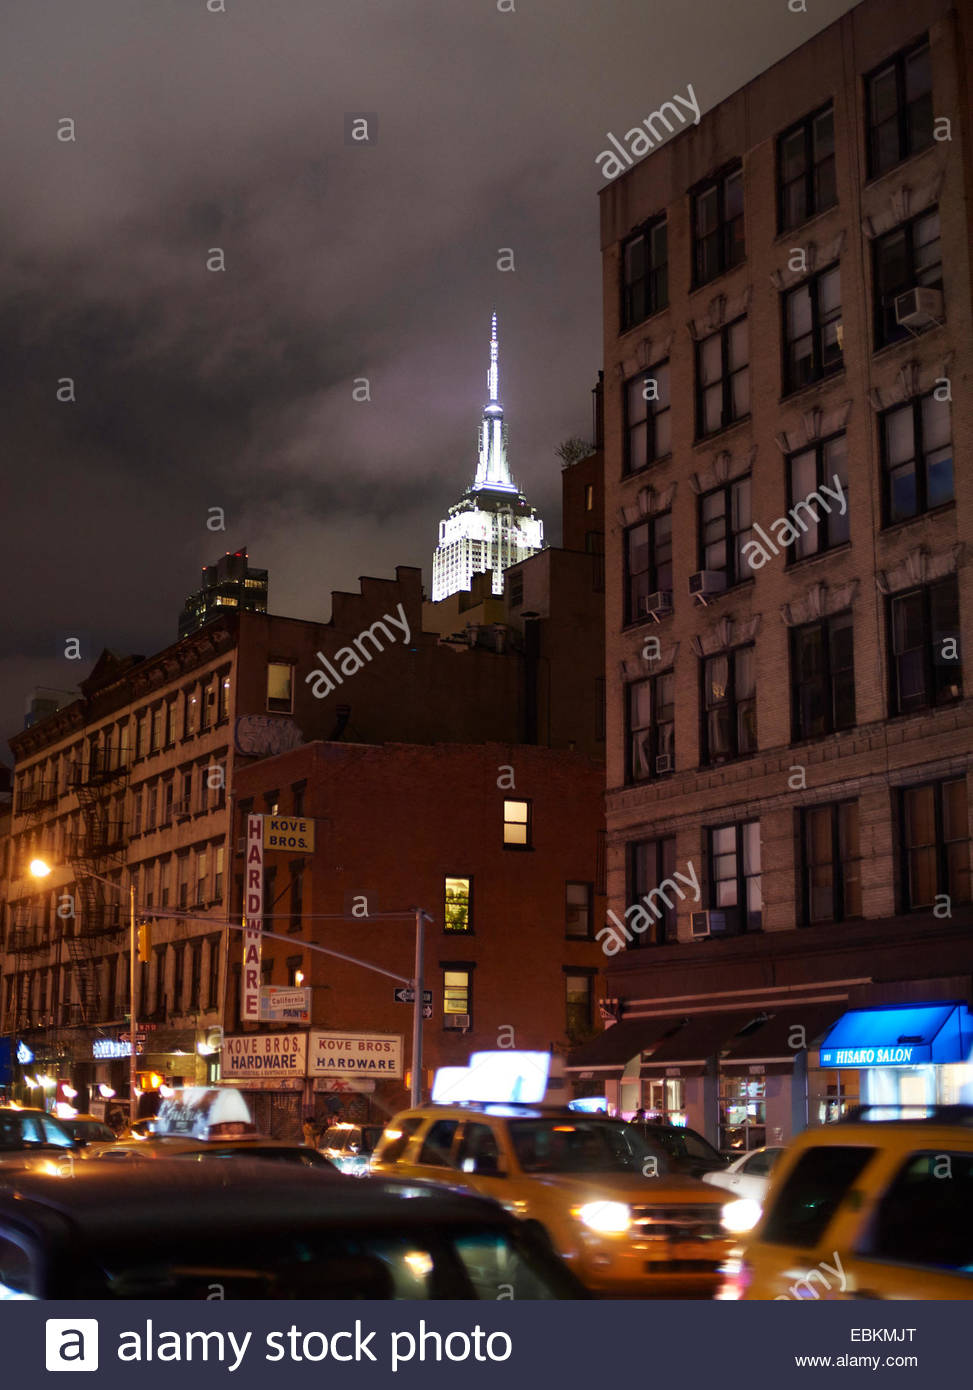 The Empire State Building illuminated at night with buildings in foreground New York USAStock Photo